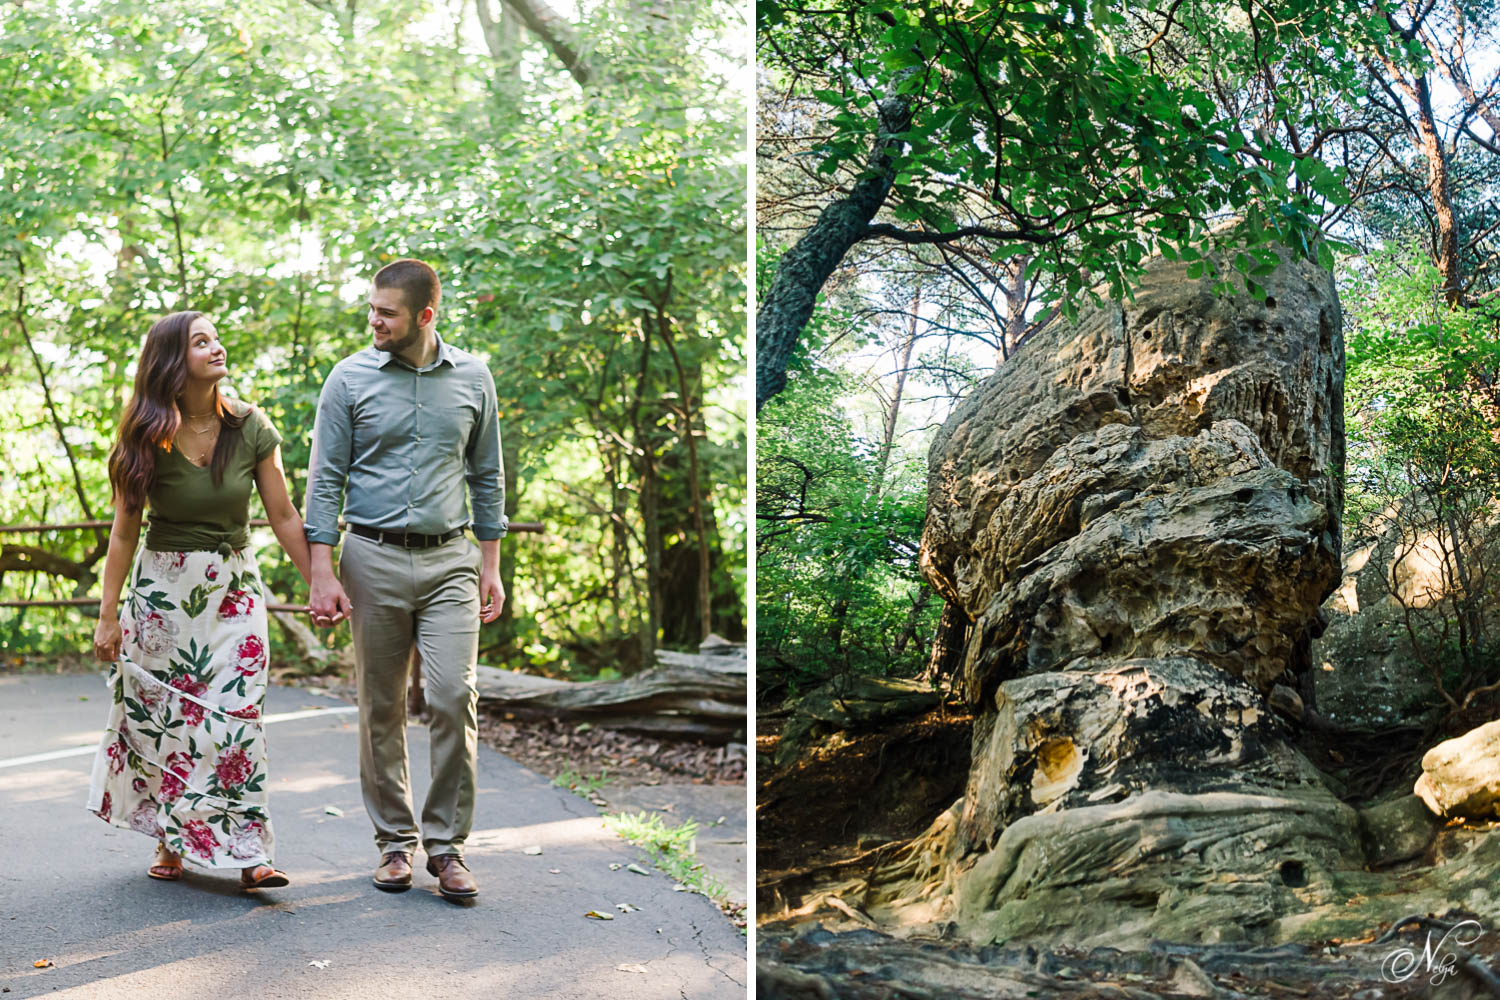 two people walking the paved trail through the trees to the Pinacle overlook in Middlesboro KY and Cumberland Gap TN. And an interesting large rock along the trail